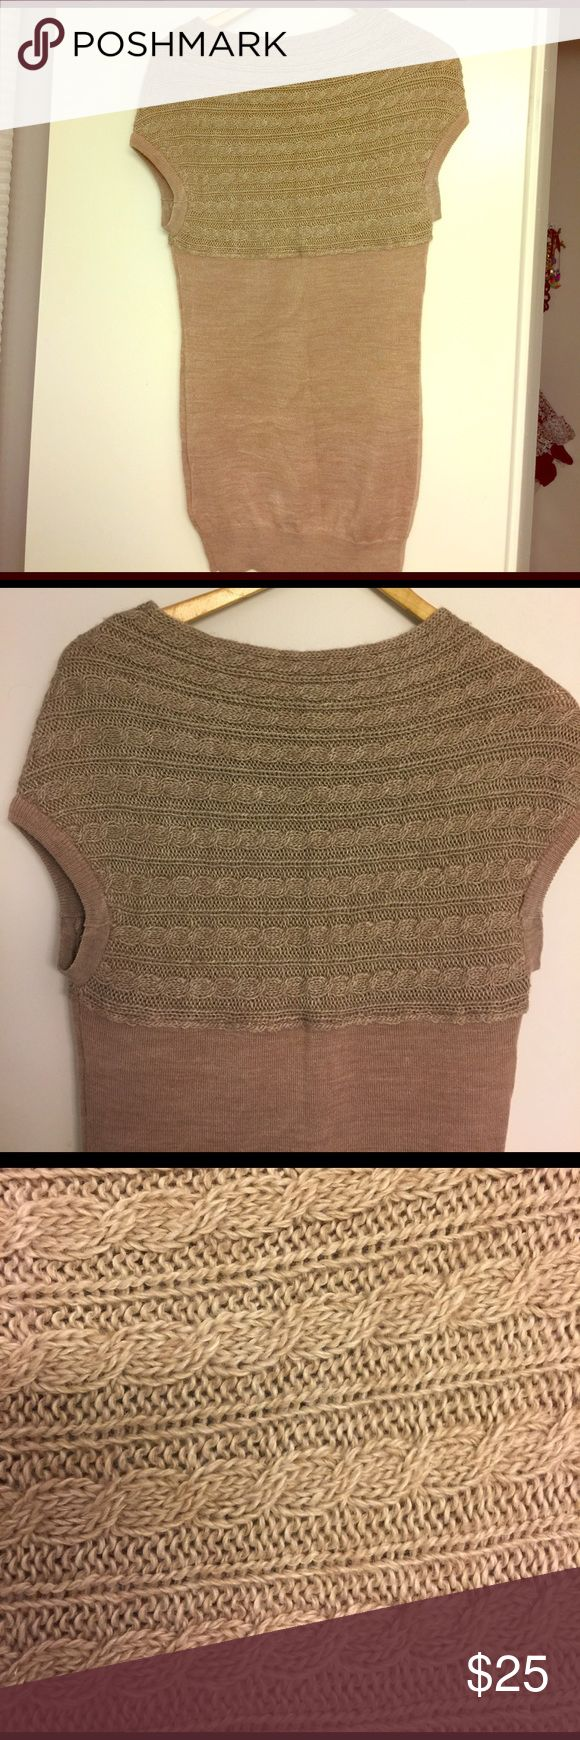 Mango cable sweater tank SZ S Camel color Mango cable sweater tank SZ S. Purchased in Europe at Mango store, this twist in the classic cable sweater is fun and flattering. Very good condition! Mango Sweaters